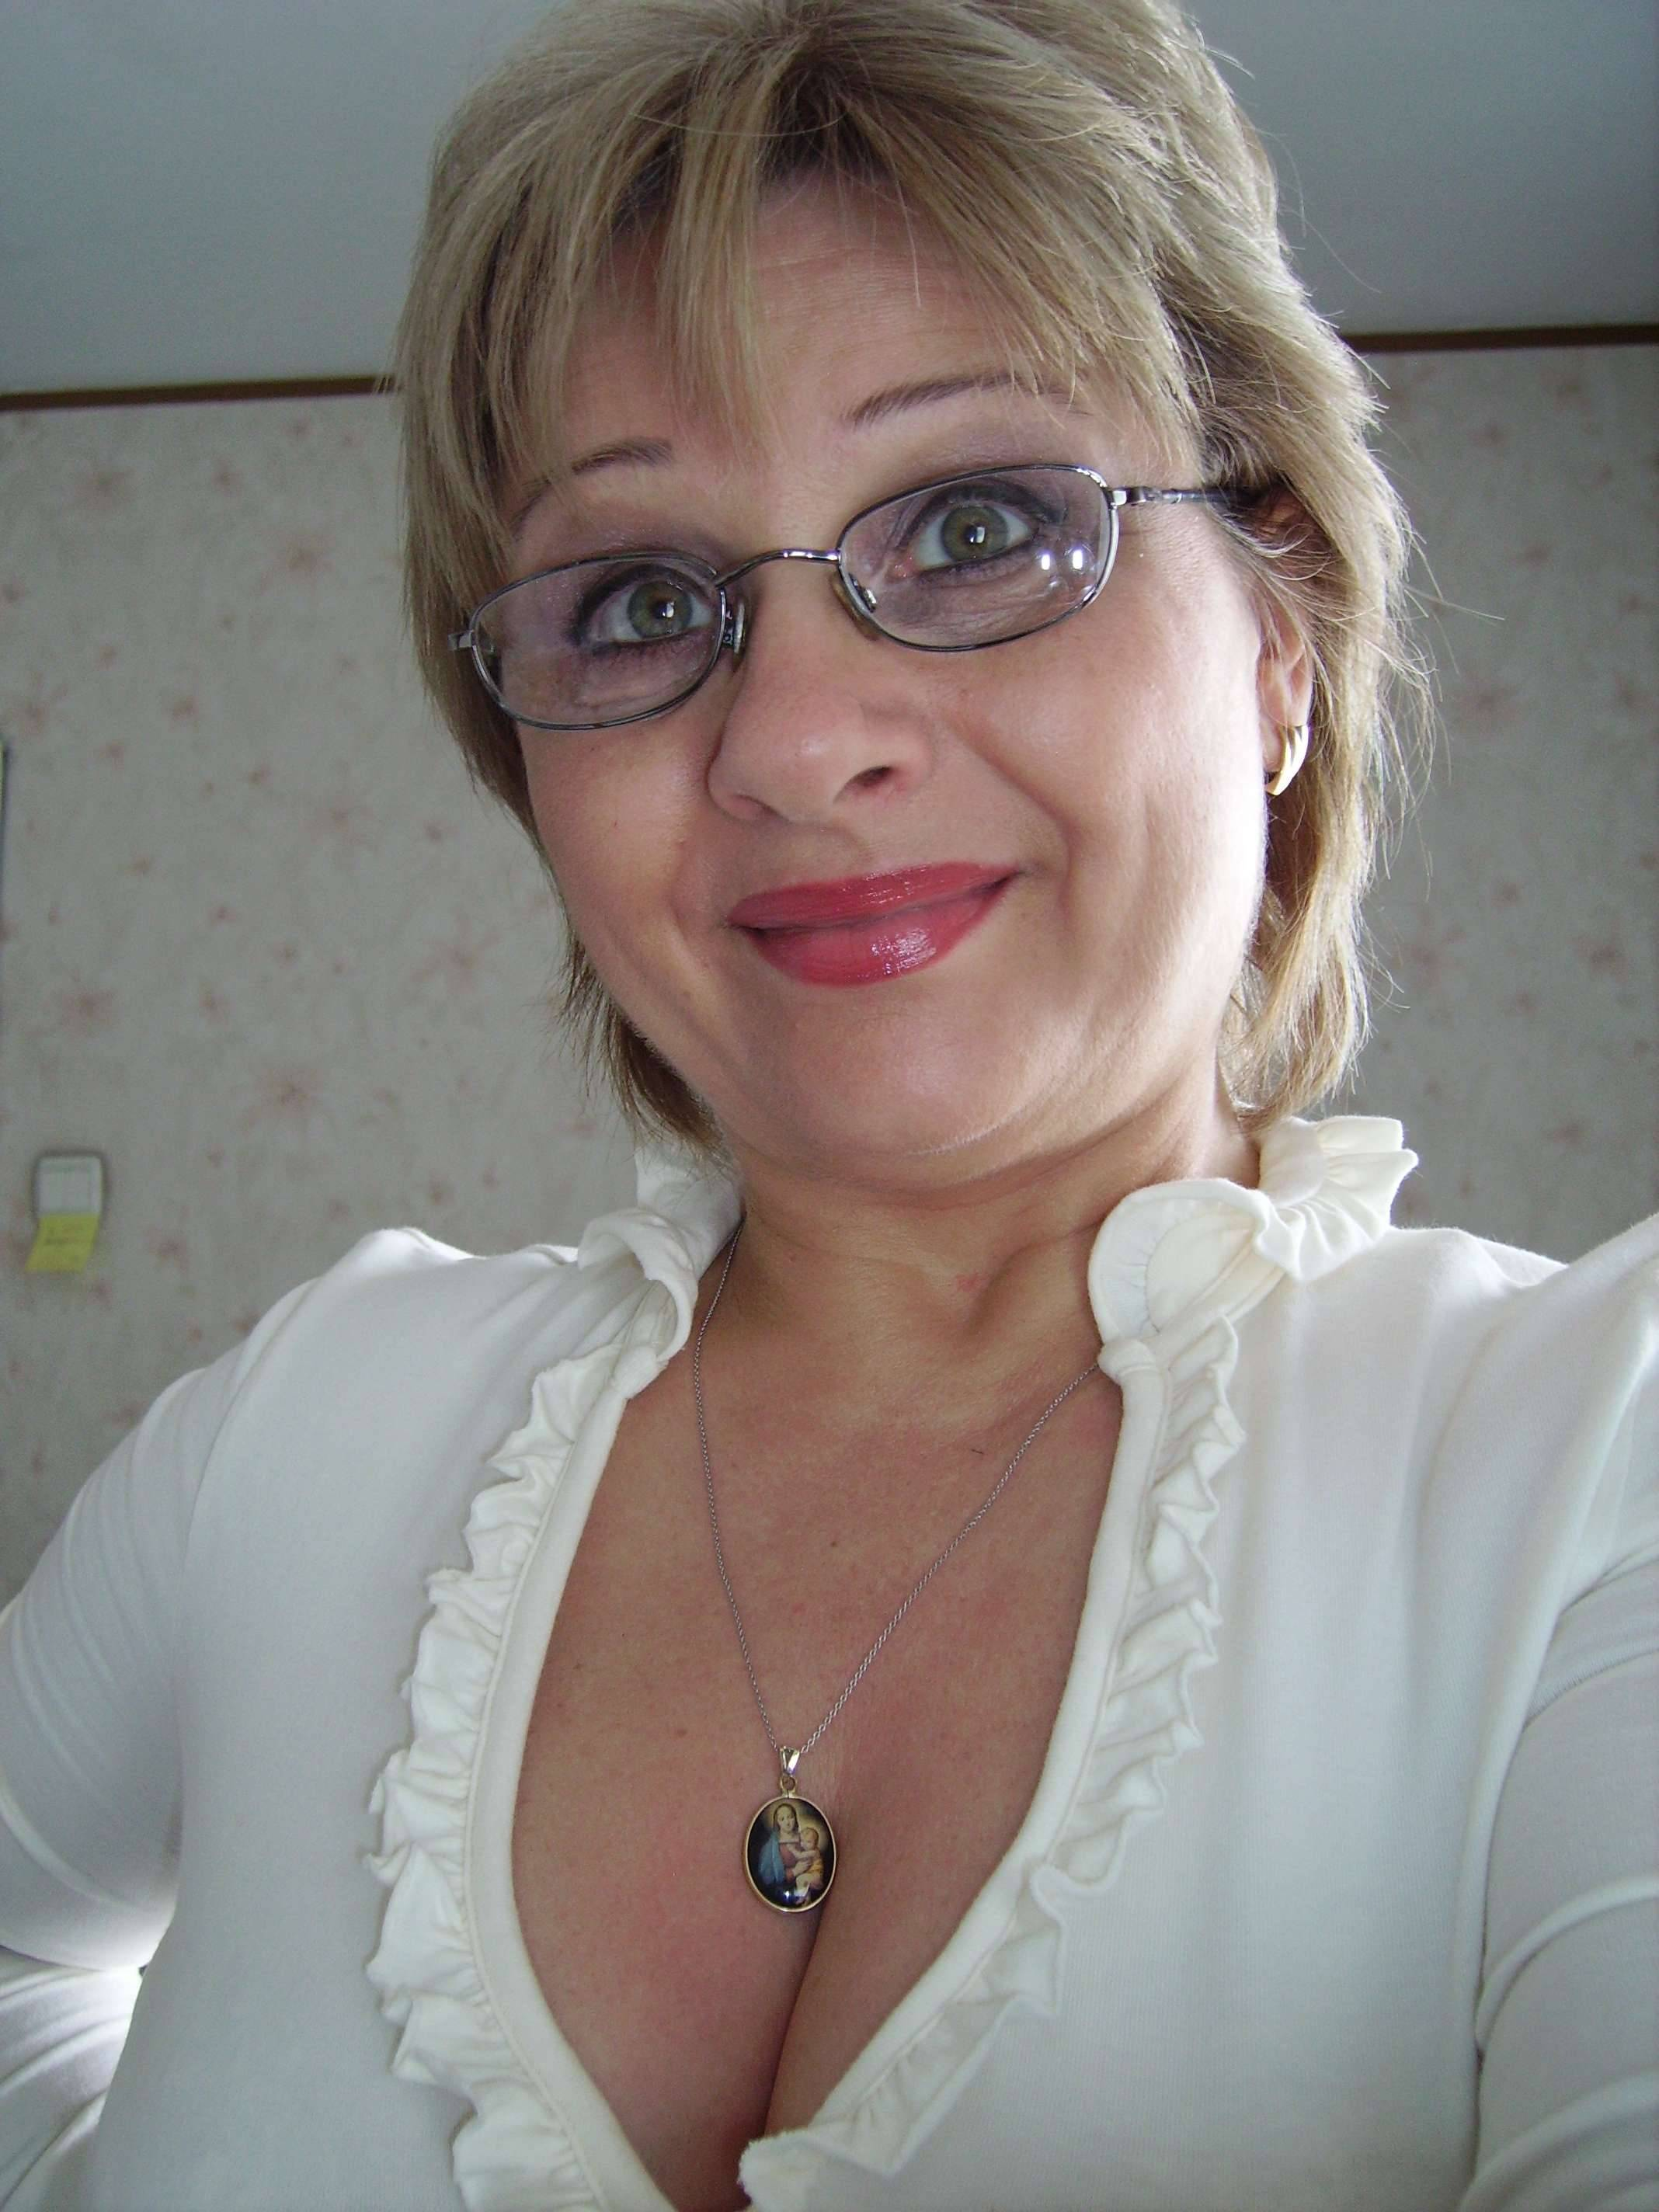 Atlana backpage women seeking men